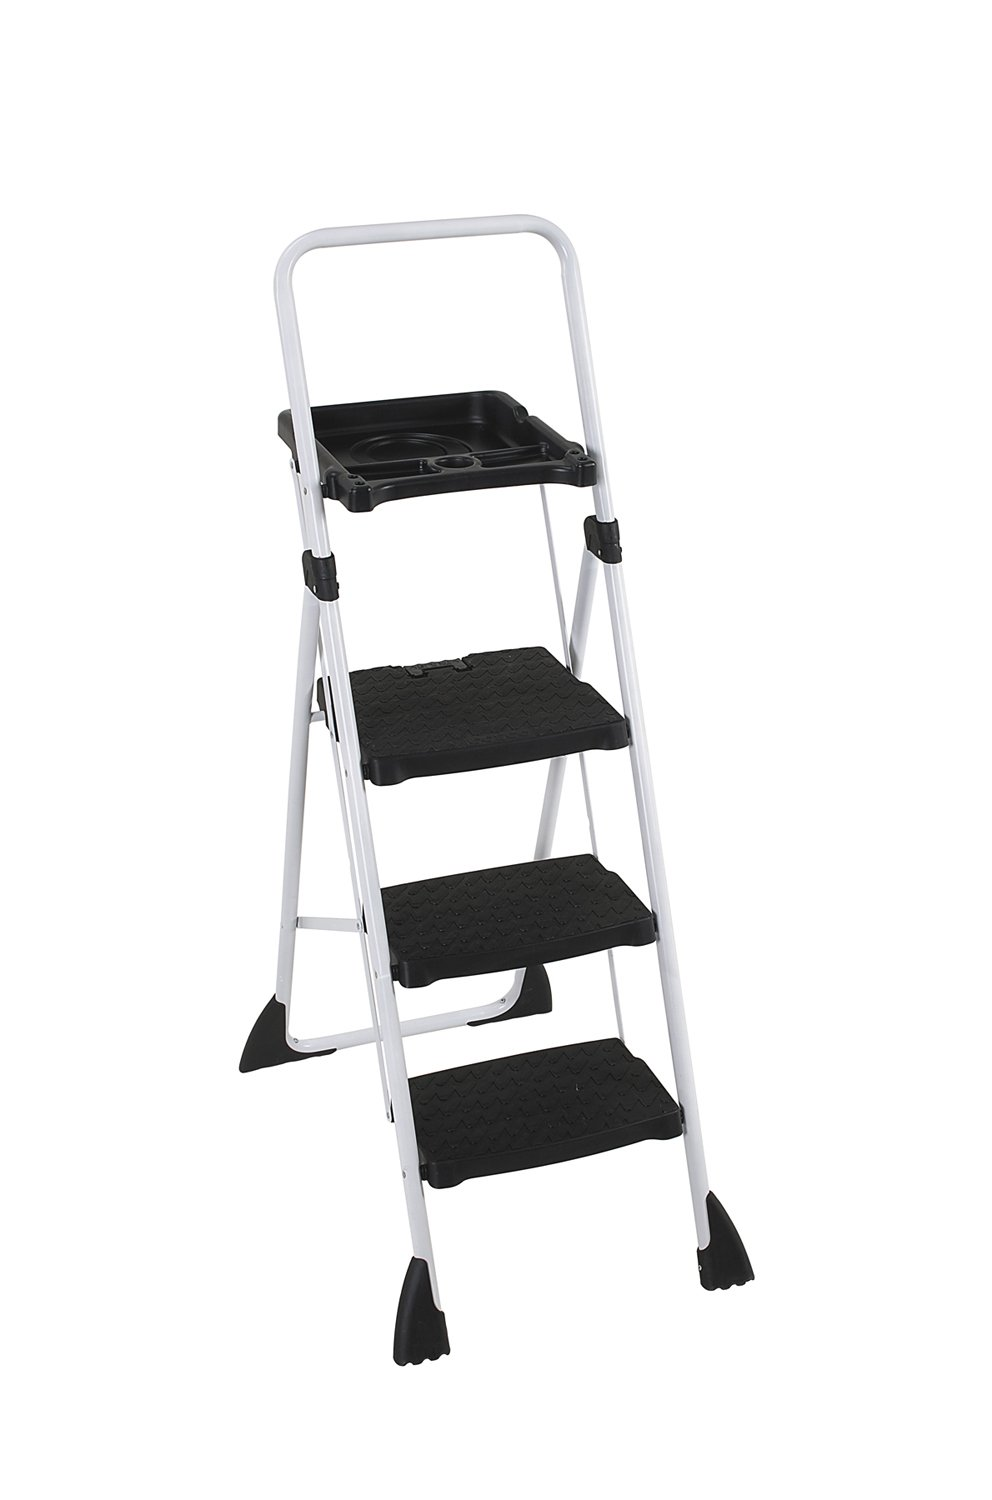 Cosco Tri Step Plus Work Platform